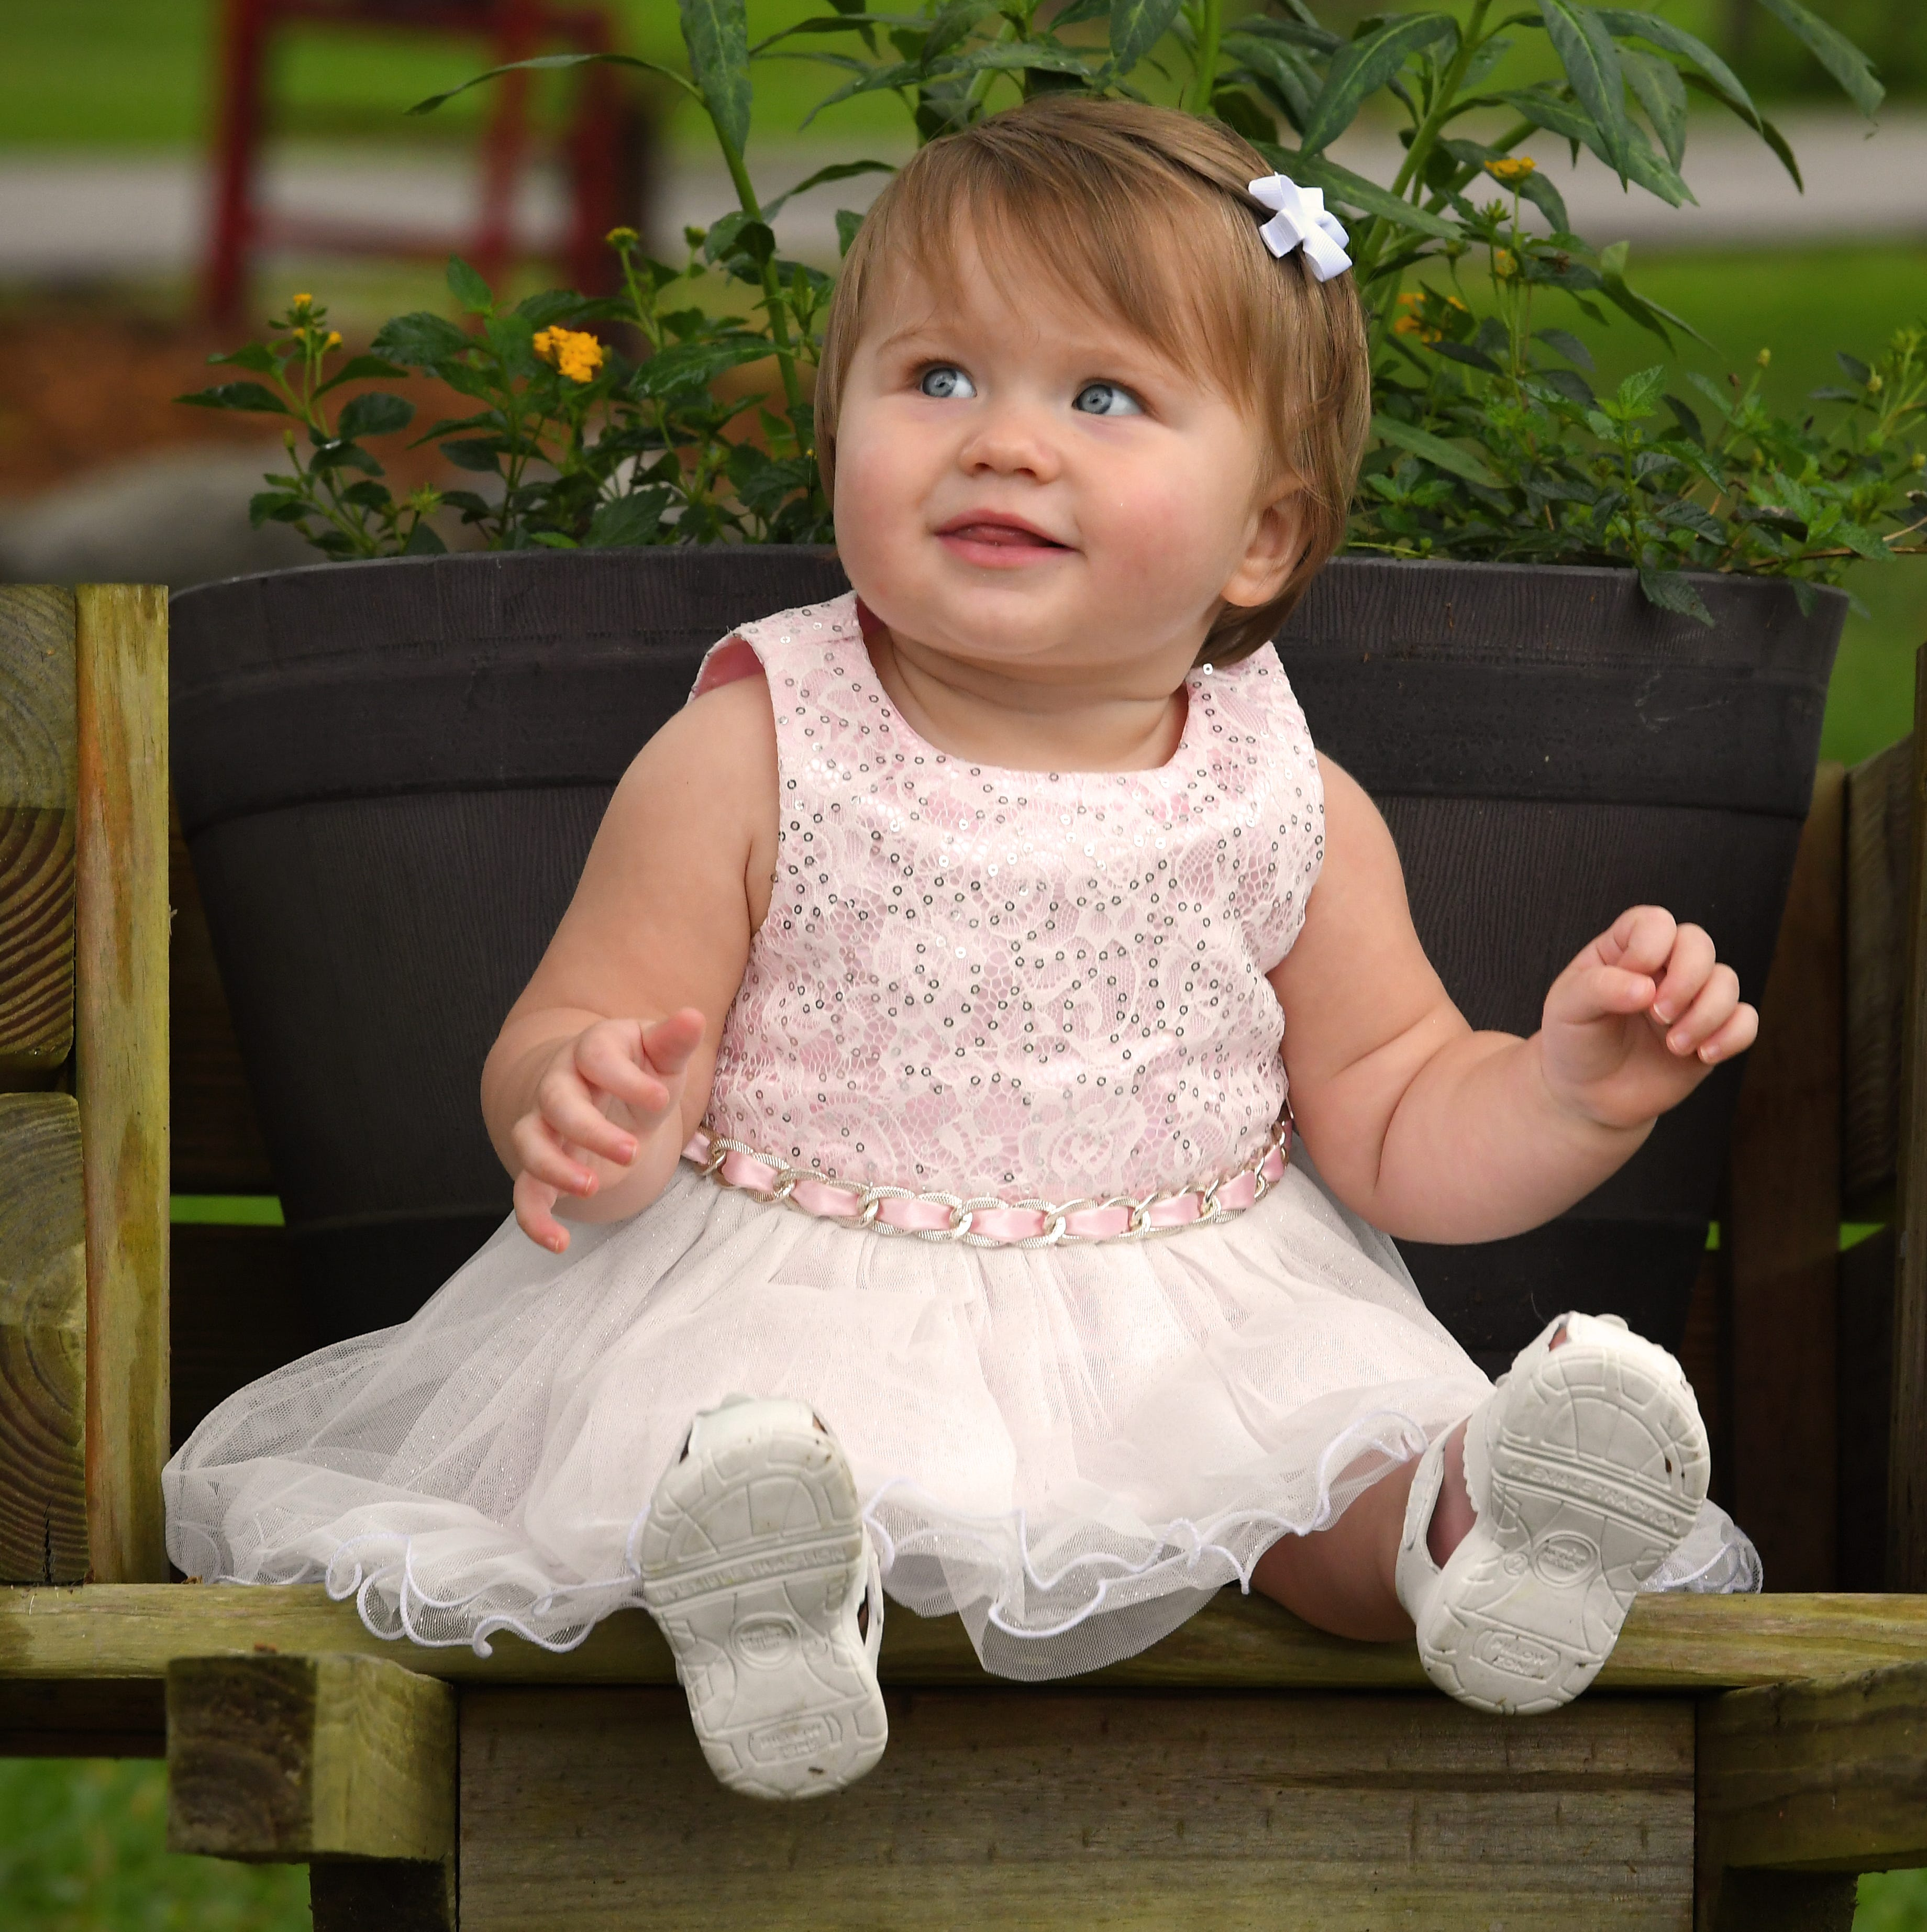 Raelyn, 10 months, is the April Child of the Month